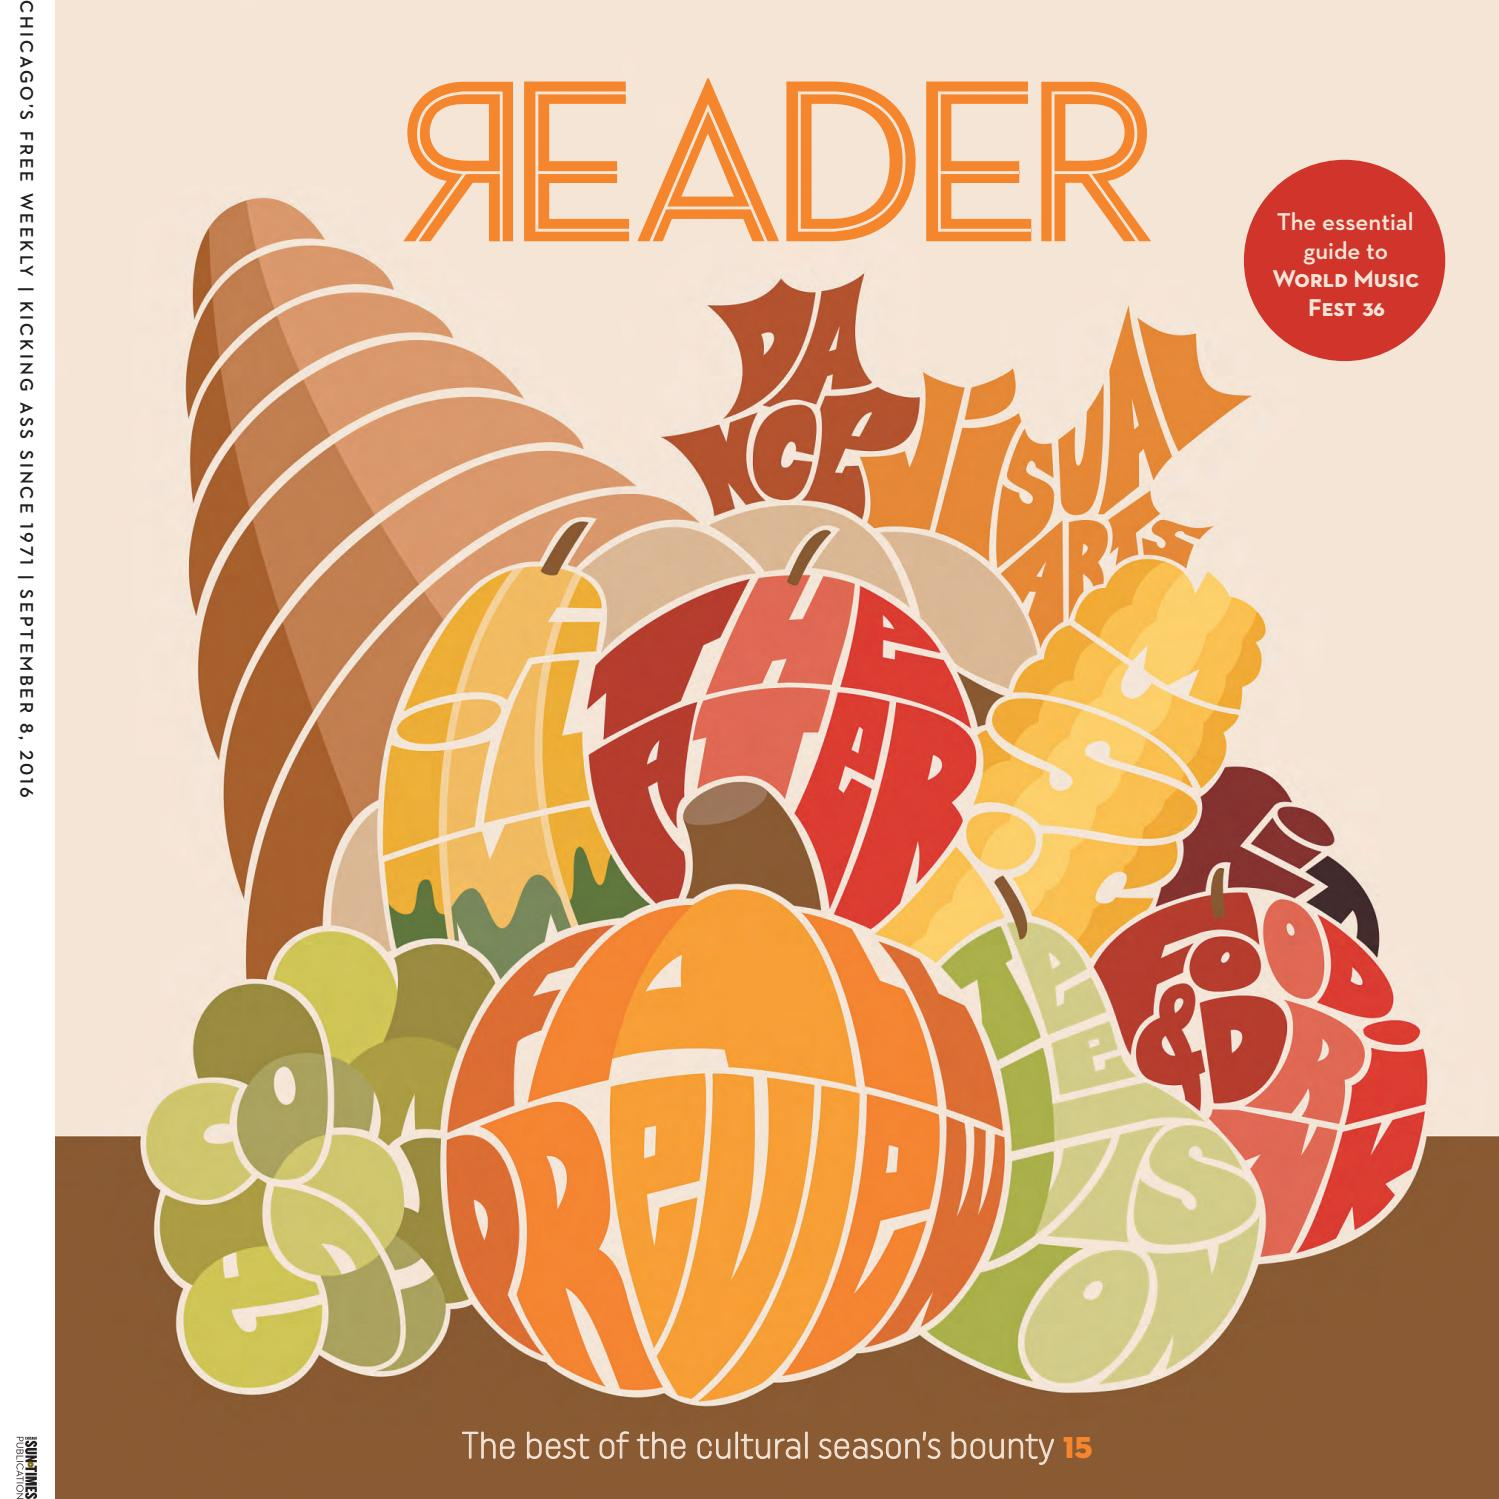 chicago reader print issue of volume number chicago reader print issue of 8 2016 volume 45 number 48